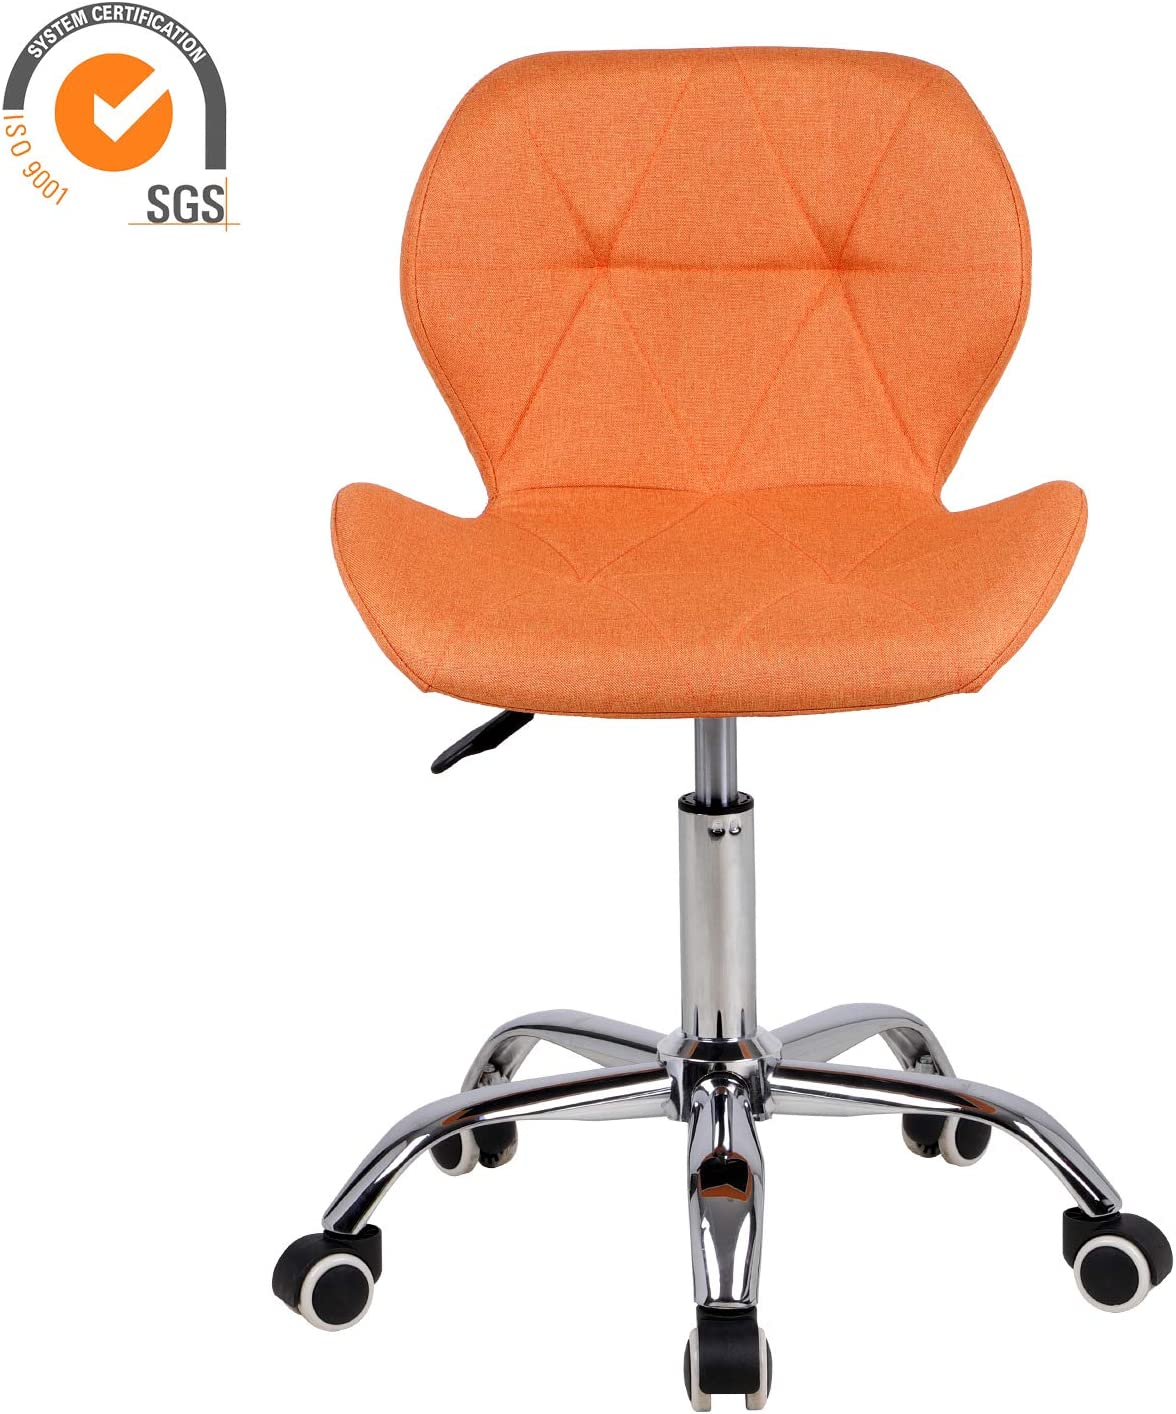 EUCO Office Chair,Brown PU Leather Desk Chair for Home Adjustable Height Swivel Chair Comfy Padded Computer Chair,Home//Office Furniture